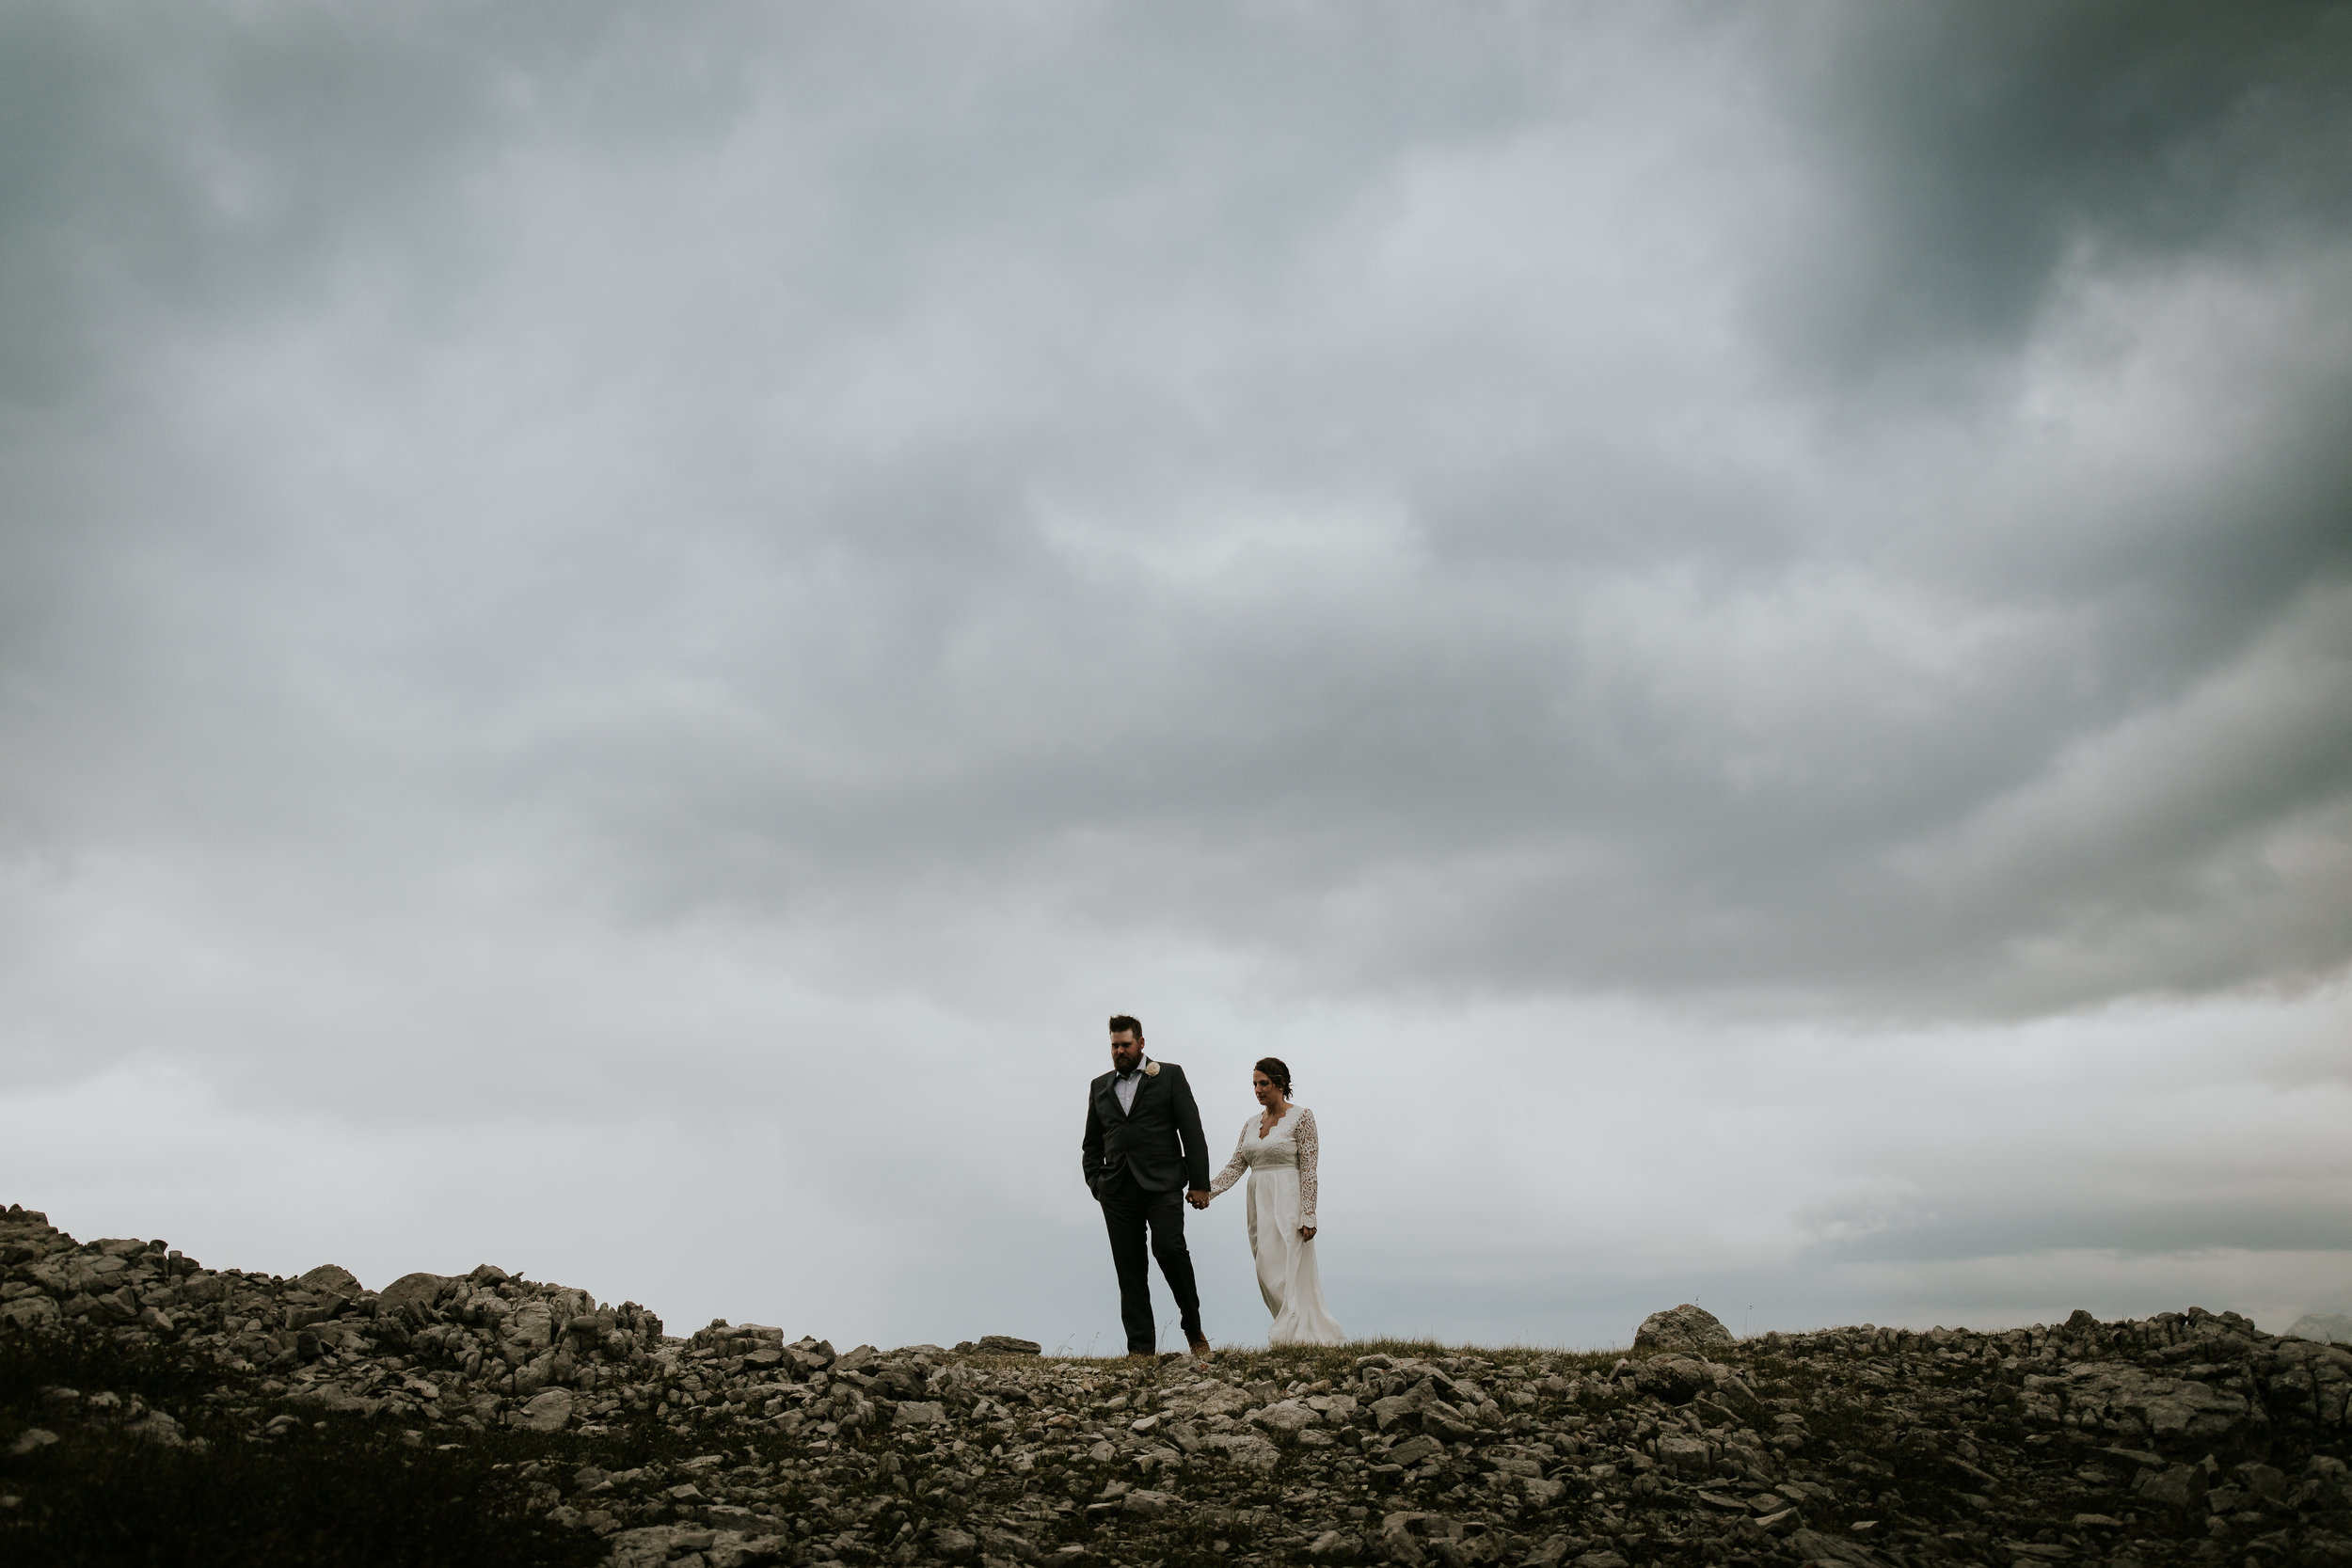 Epic helicopter elopement mountain shot with stormy sky in the background and husband and wife holding hands.